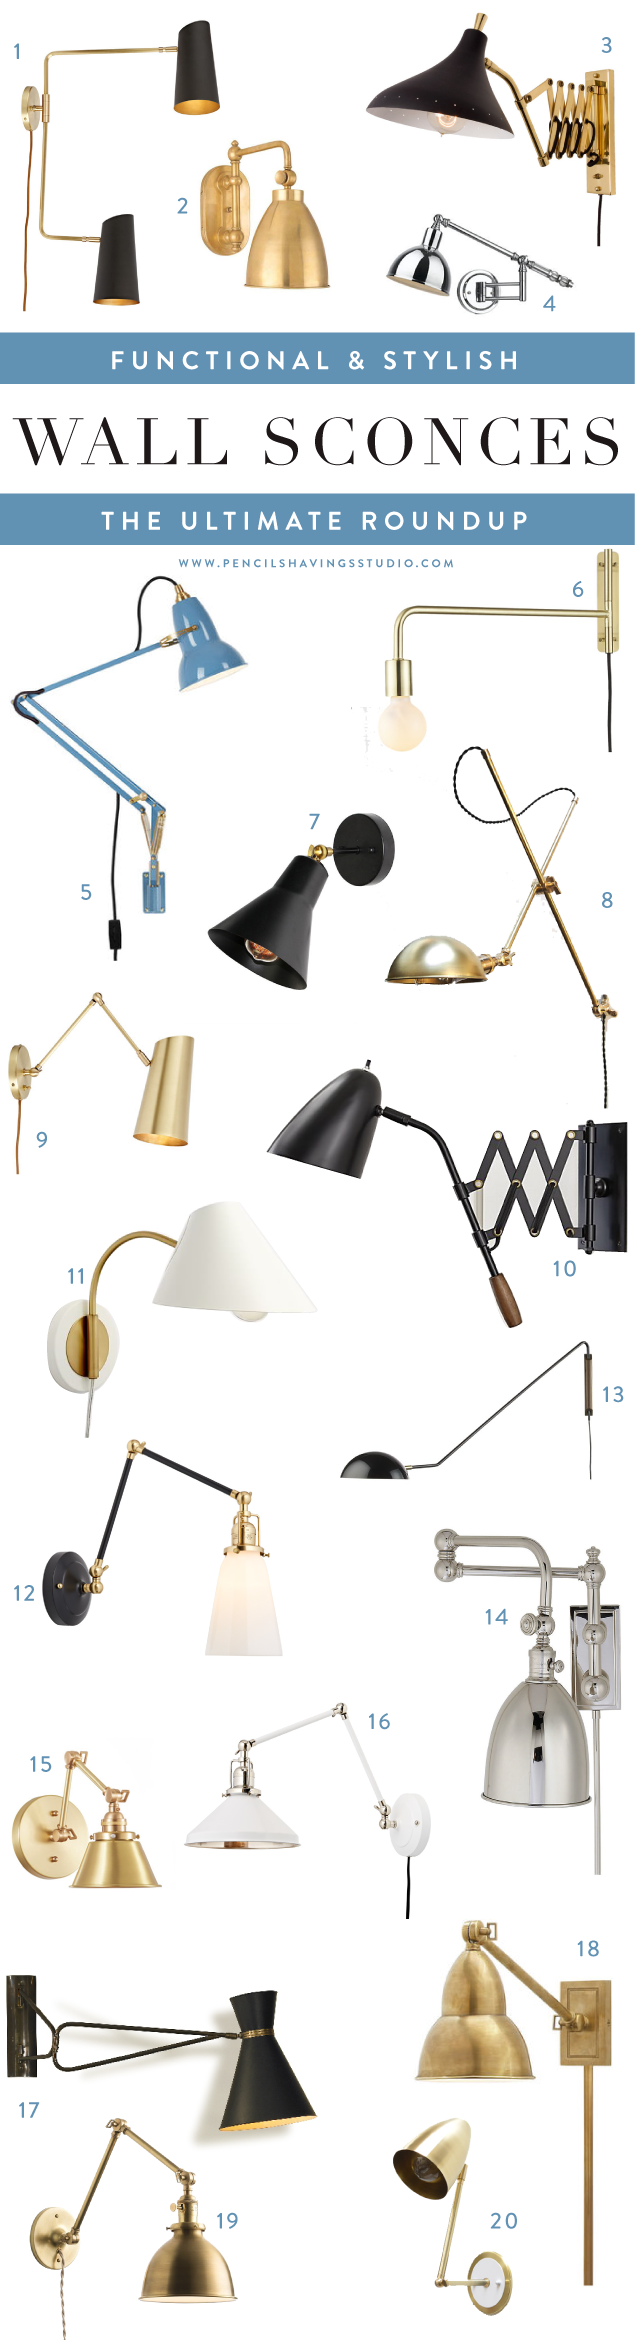 Chloe loft industrial 2 light oil rubbed bronze wall sconce free - 20 Stylish Swing Arm Sconces The Ultimate Roundup